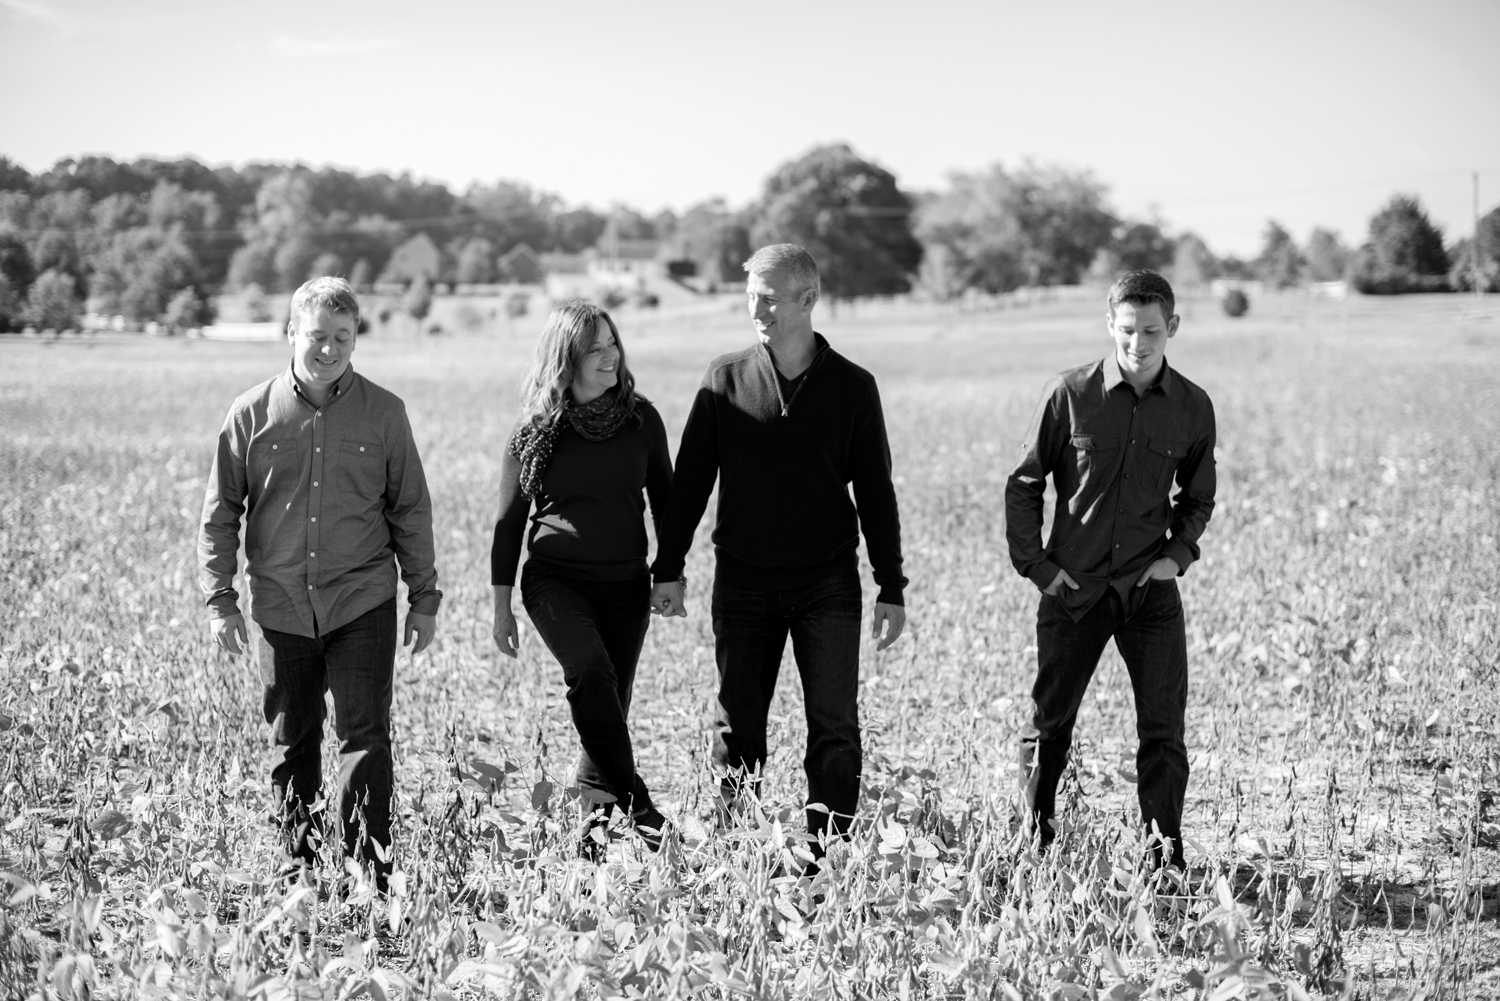 Windsor Castle Park fall family portraits in Smithfield, Virginia (black and white)